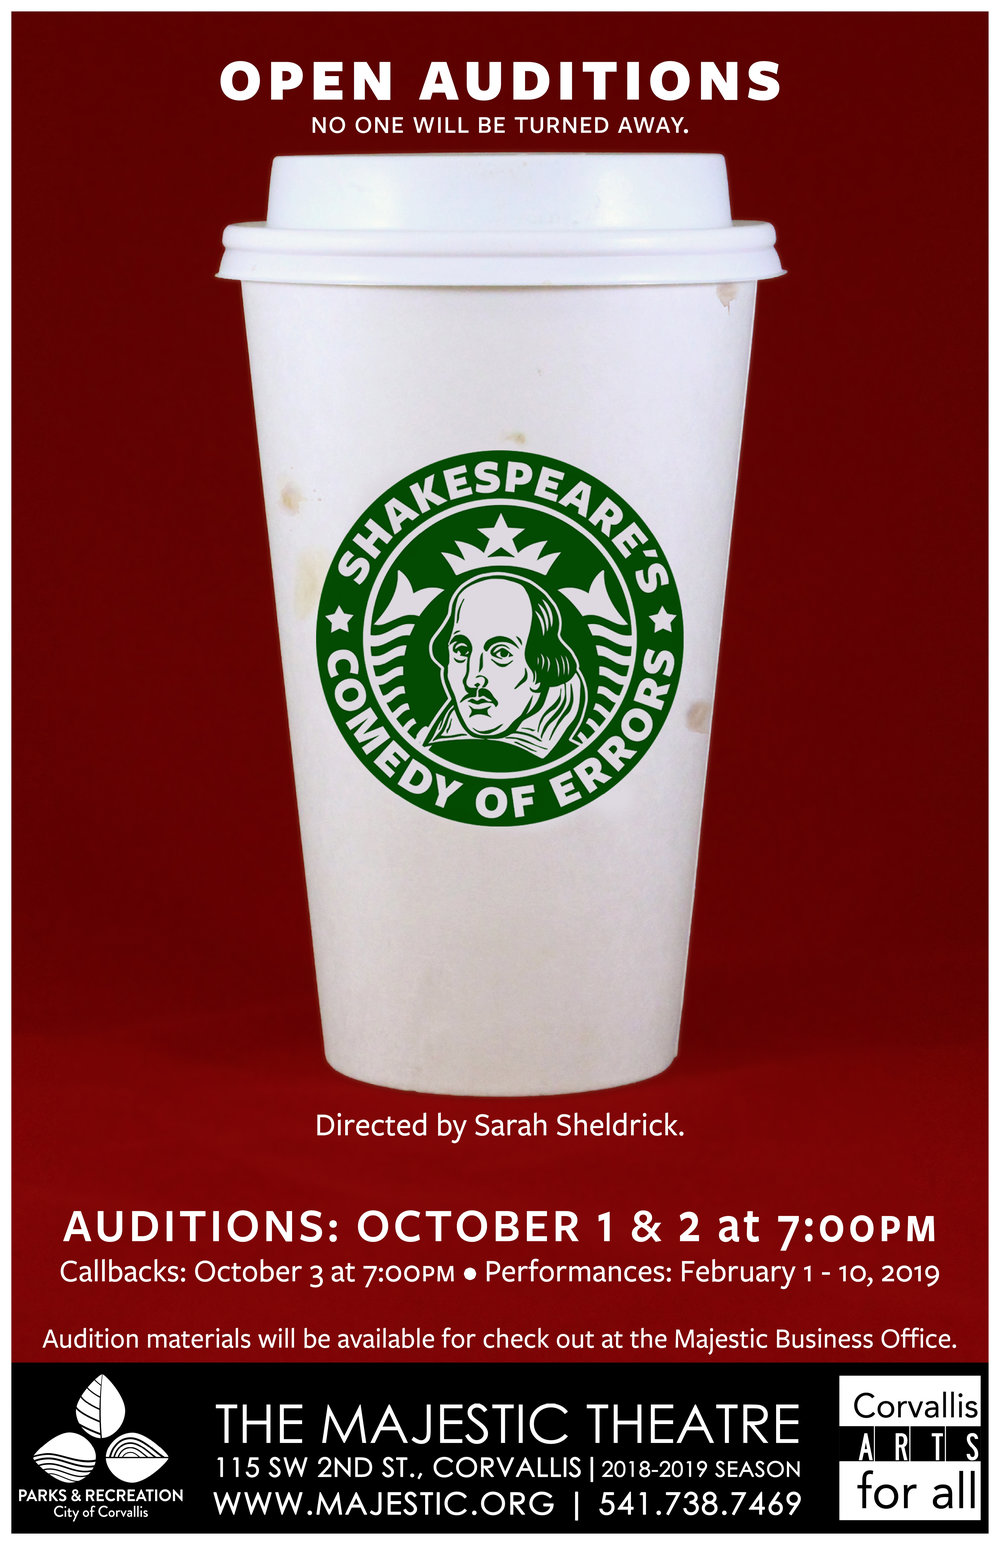 Comedy_Auditions 11x17.jpg